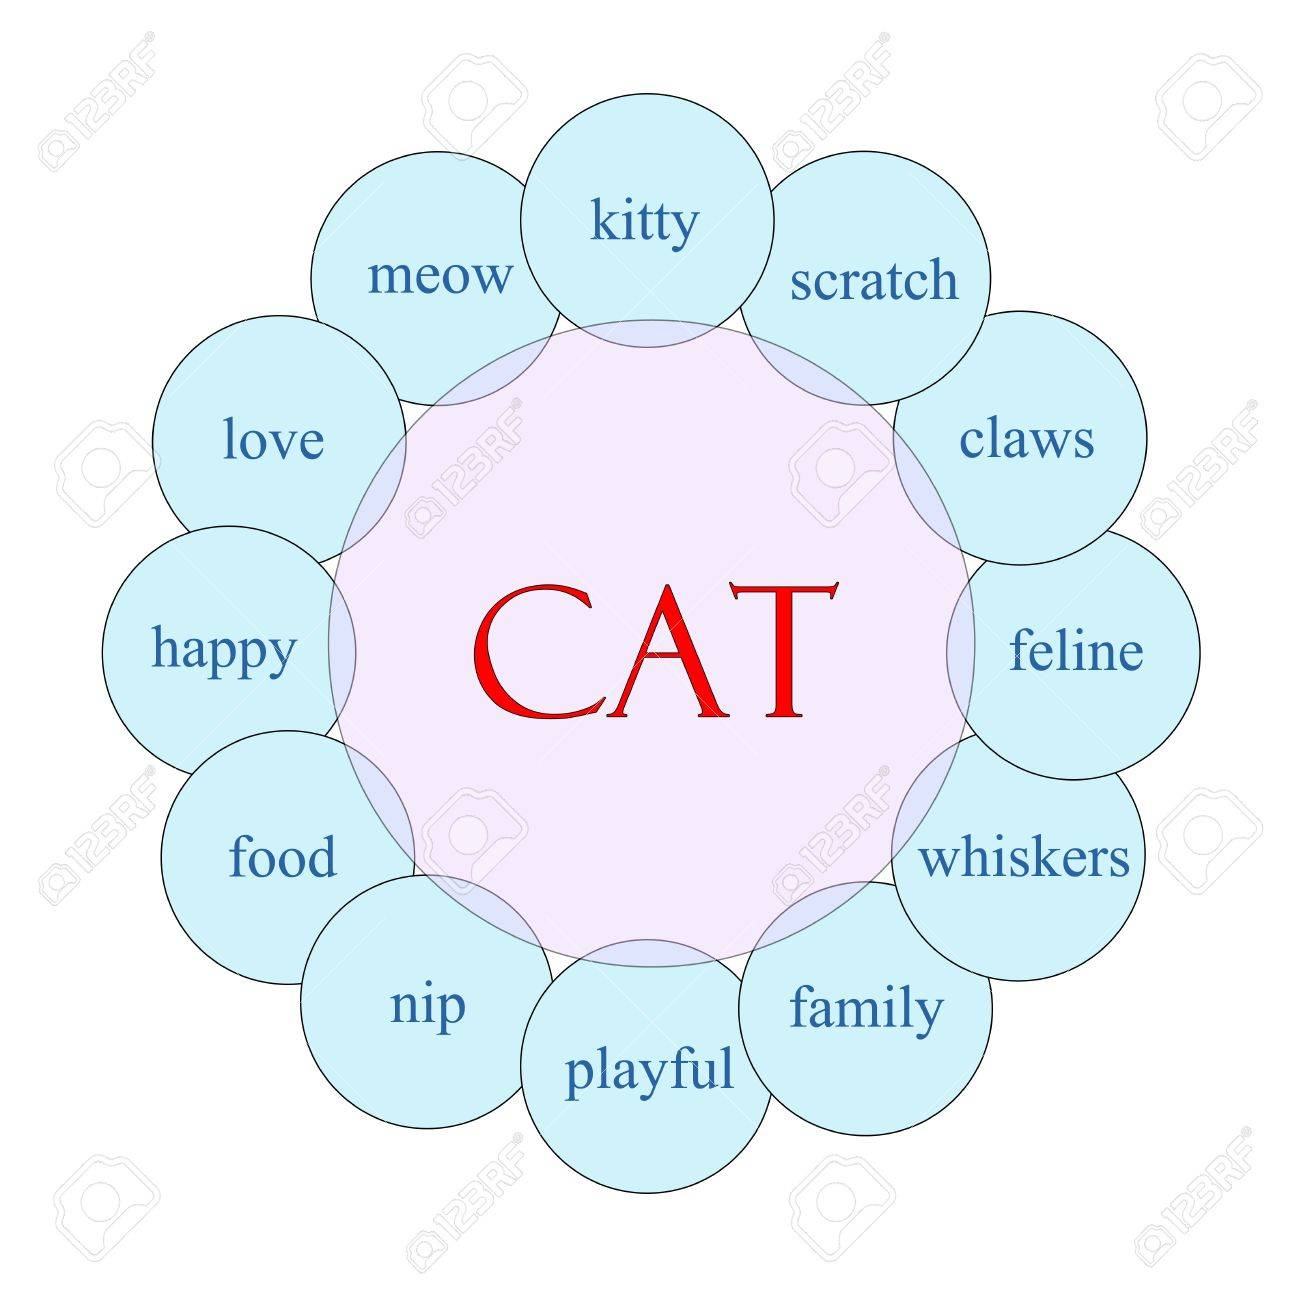 Cat concept circular diagram in pink and blue with great terms such as meow, kitty, scratch and more. Stock Photo - 17996215